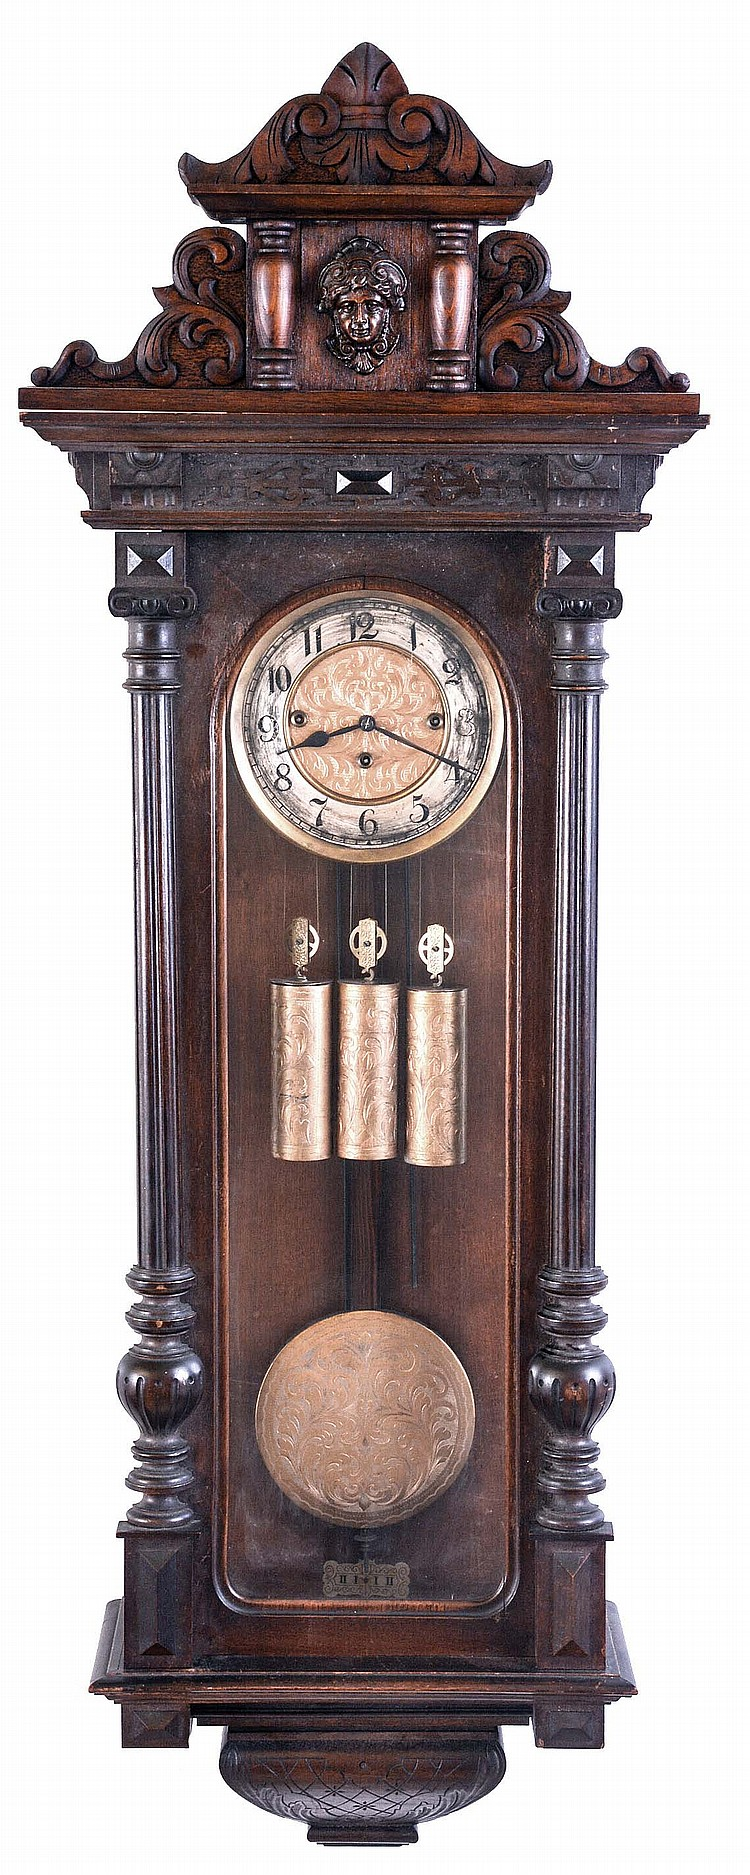 Gustav Becker, Freiburg, Germany, grand sonnerie hanging regulator, walnut case with turned and carved ornament, and frieze with blind fret, Arabic numeral silvered dial with gilt, engraved center, the pendulum, pulleys, and weights also engraved,